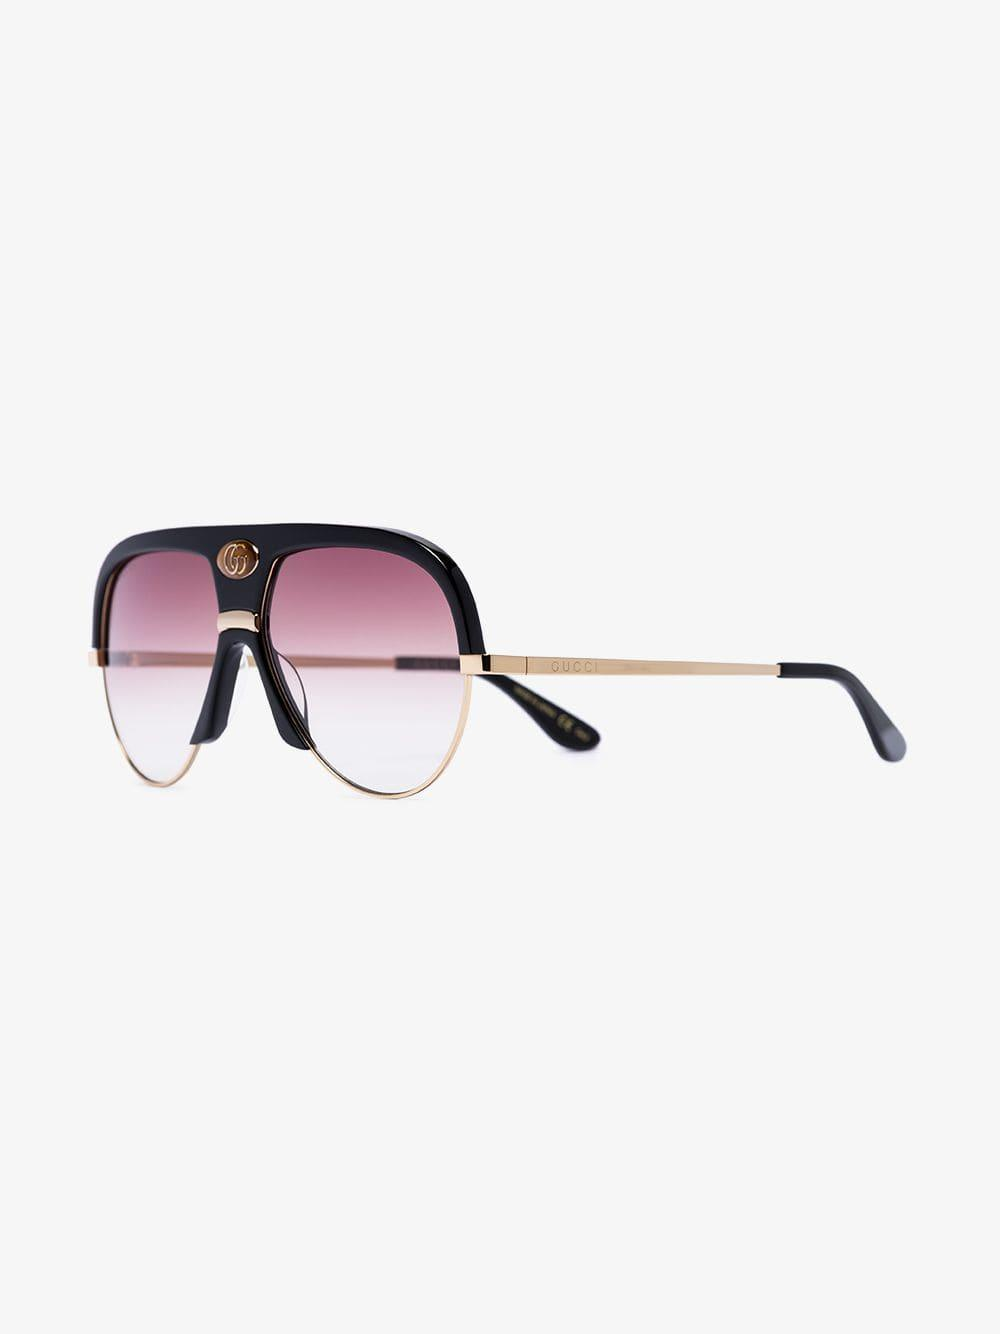 17dbed79685ee Gucci Black And Pink Navigator Sunglasses in Black for Men - Lyst